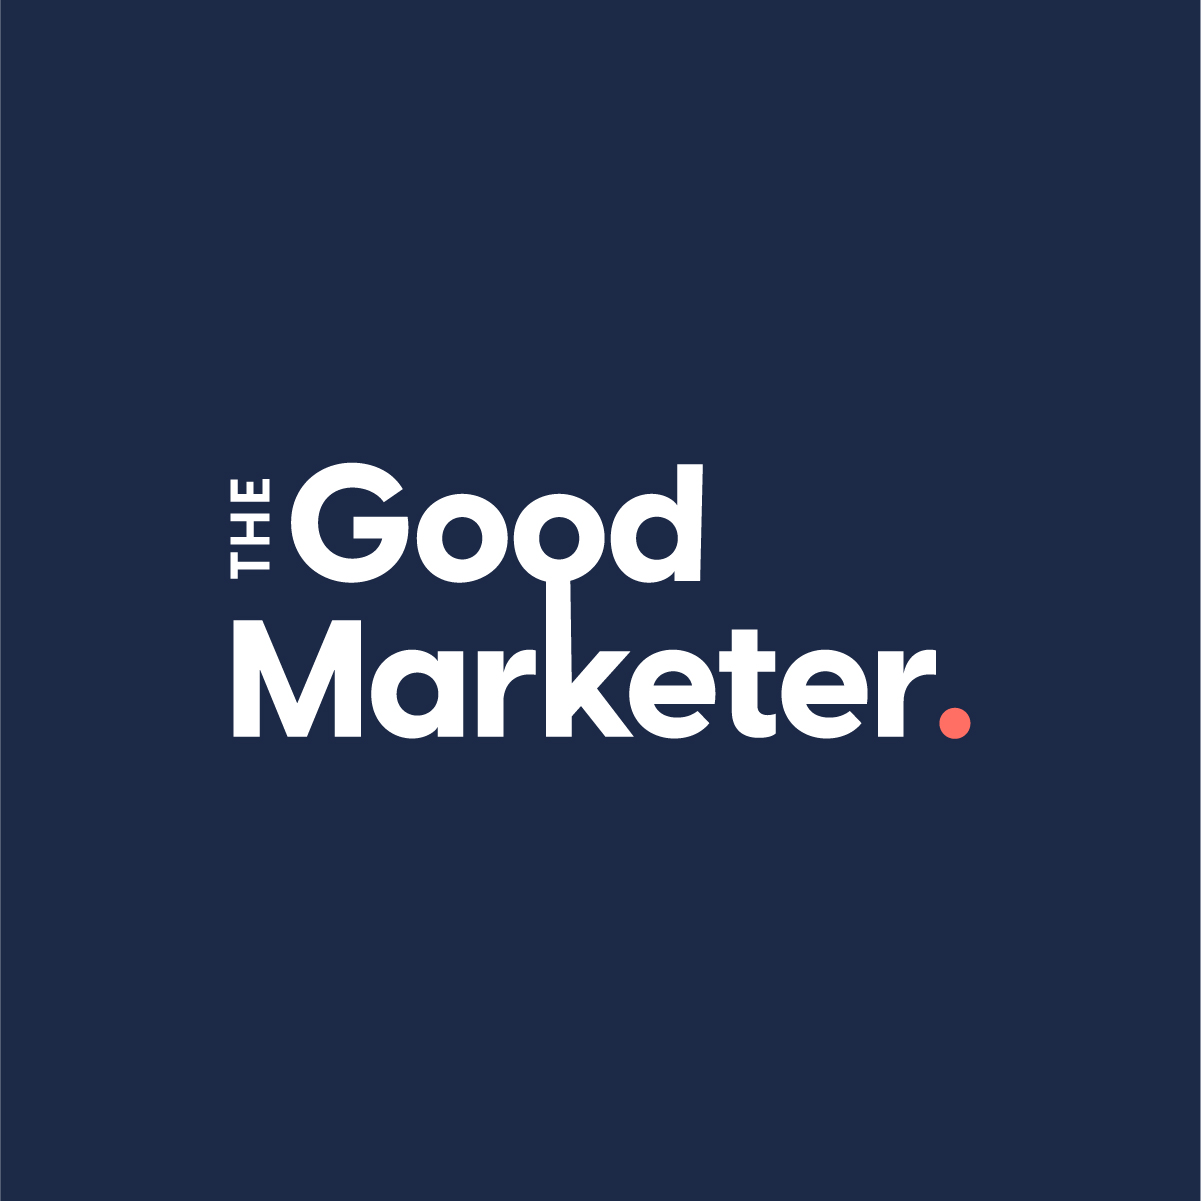 The Good Marketer Logo